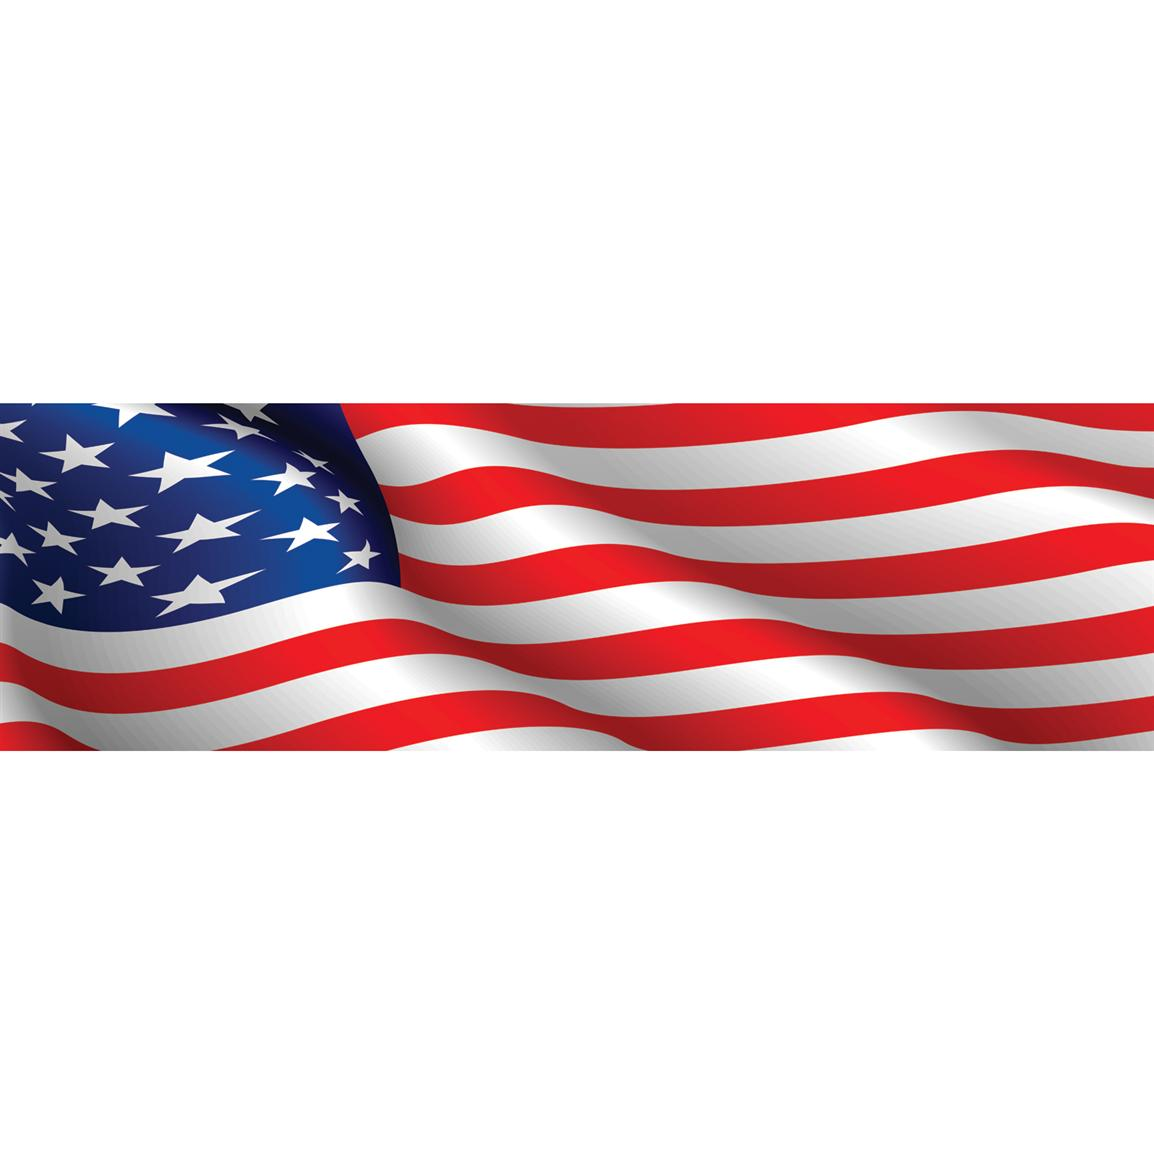 1154x1154 American Flag Graphic Free Download Clip Art Free Clip Art